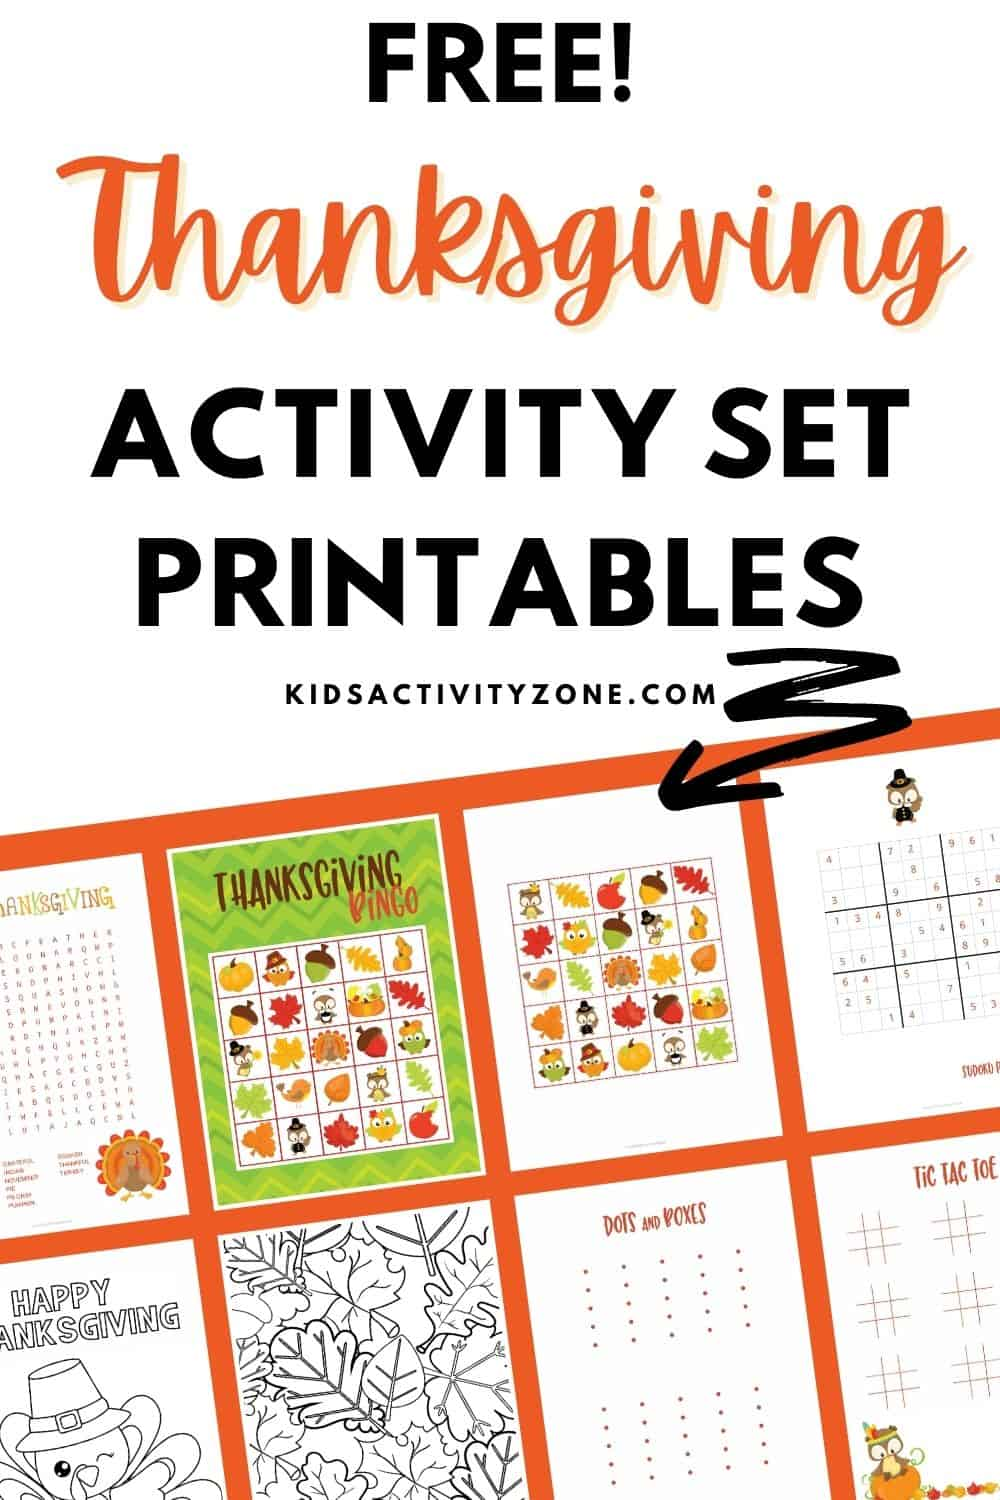 Looking for Thanksgiving printables! This FREE Thanksgiving Activities Printable Set is what you need. It's great for the classroom, Thanksgiving gatherings and more. The set includes Bingo, tic tac toe, dots and boxes game, Sudoku puzzles and more. There's something for everyone.